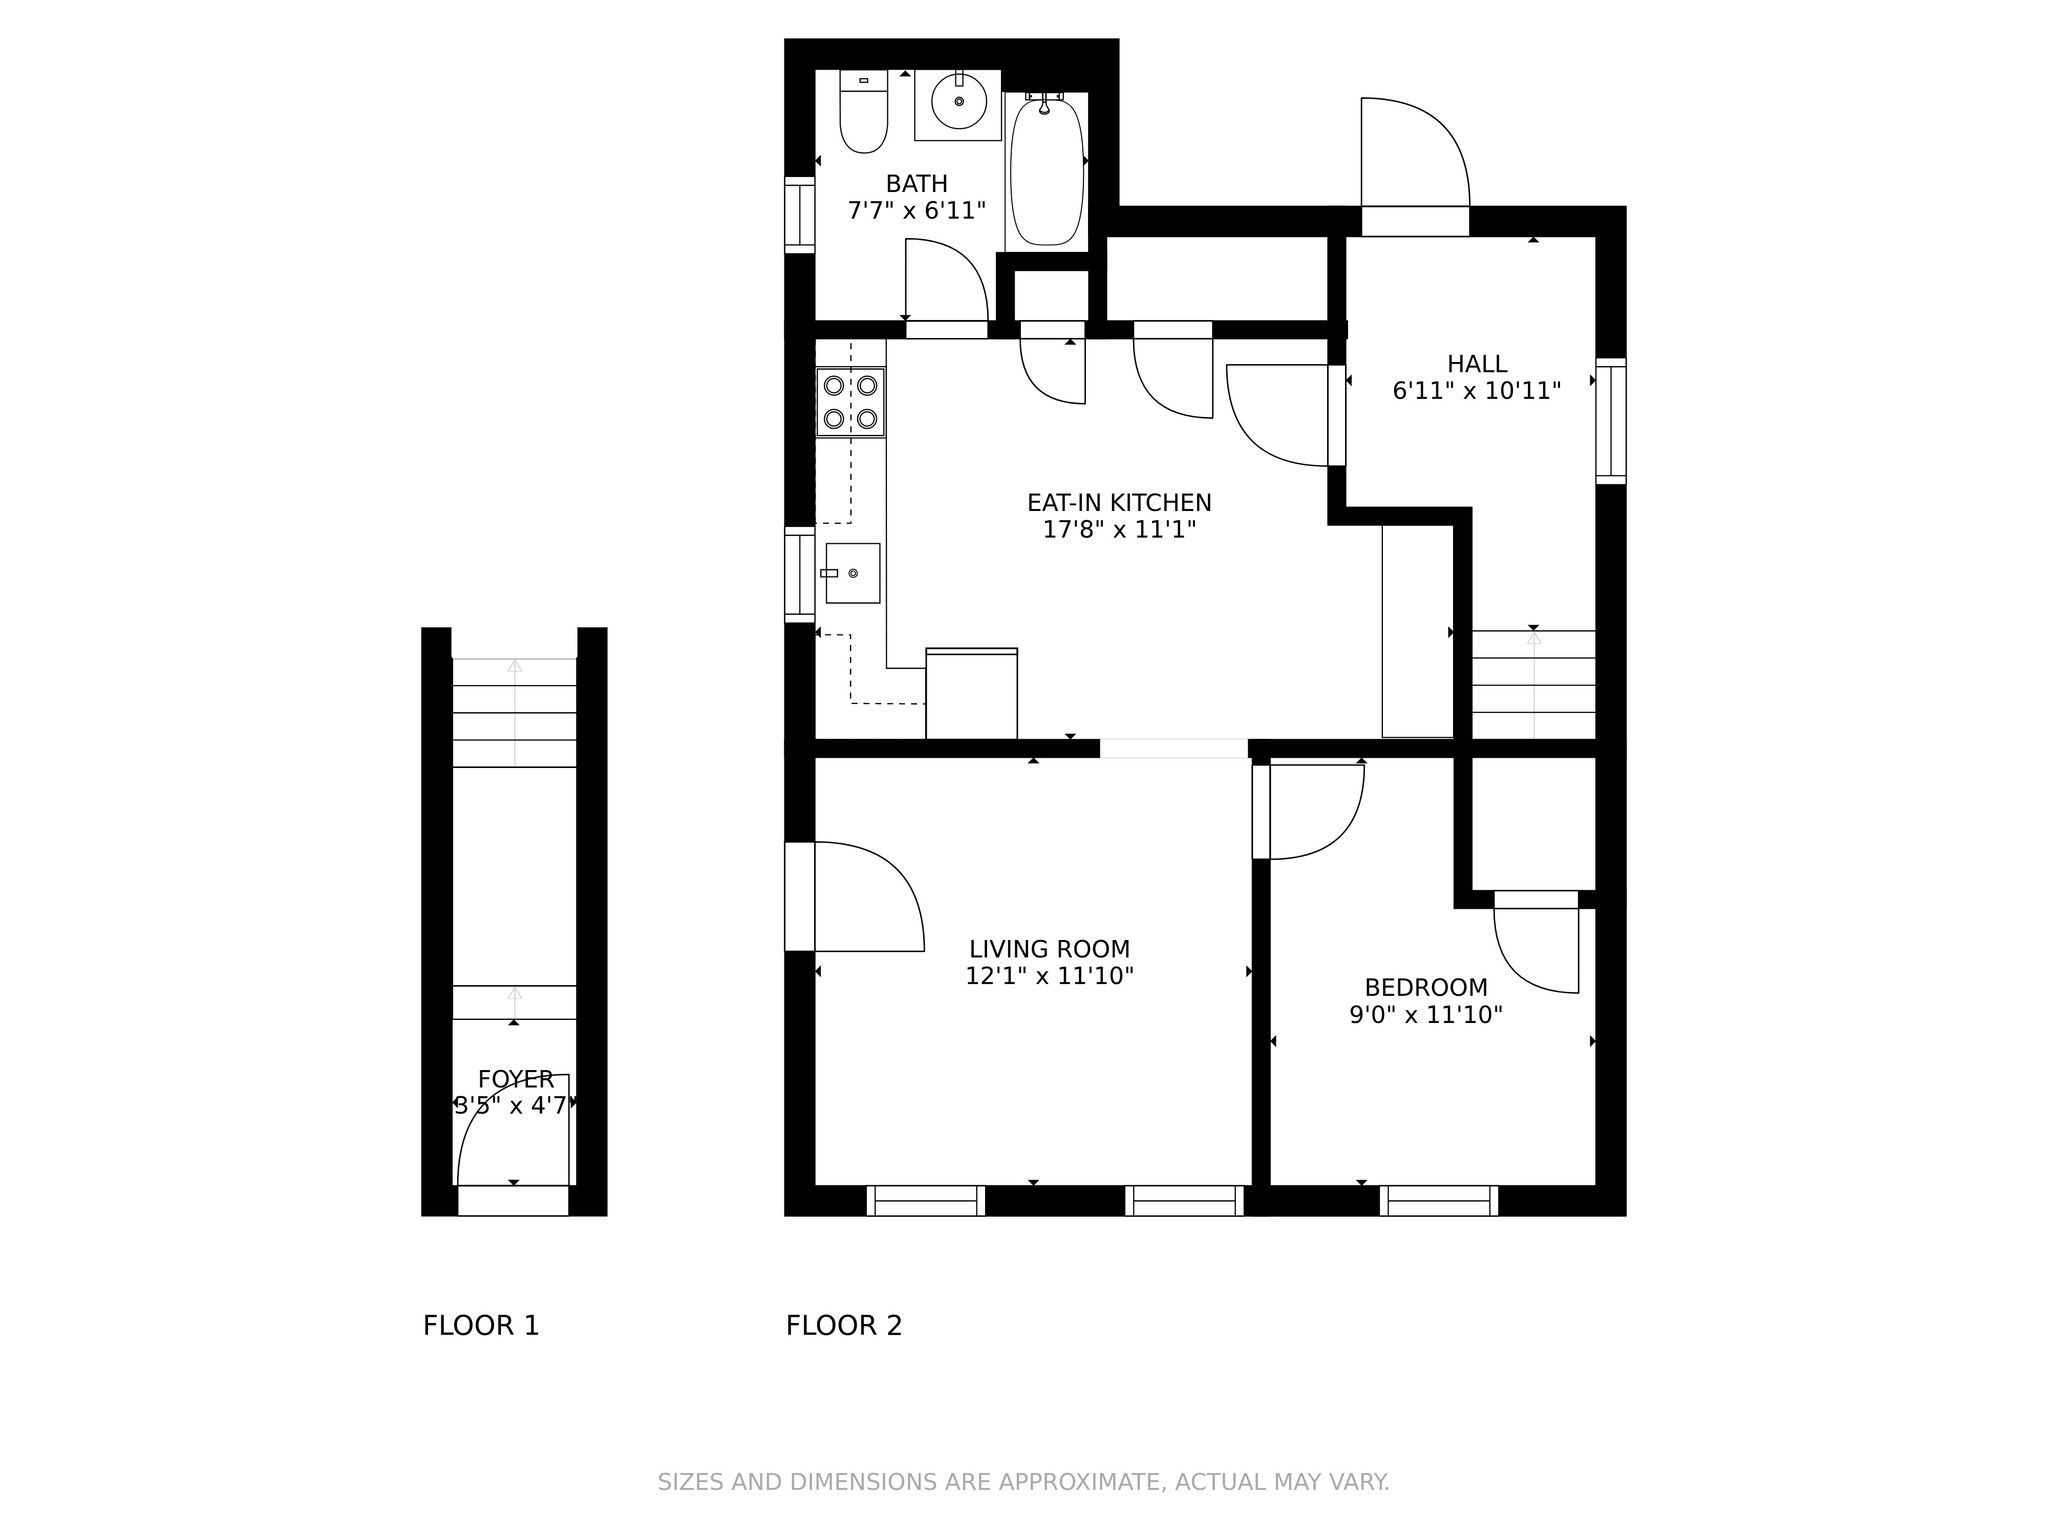 31 Hall Ave (Image - 3)